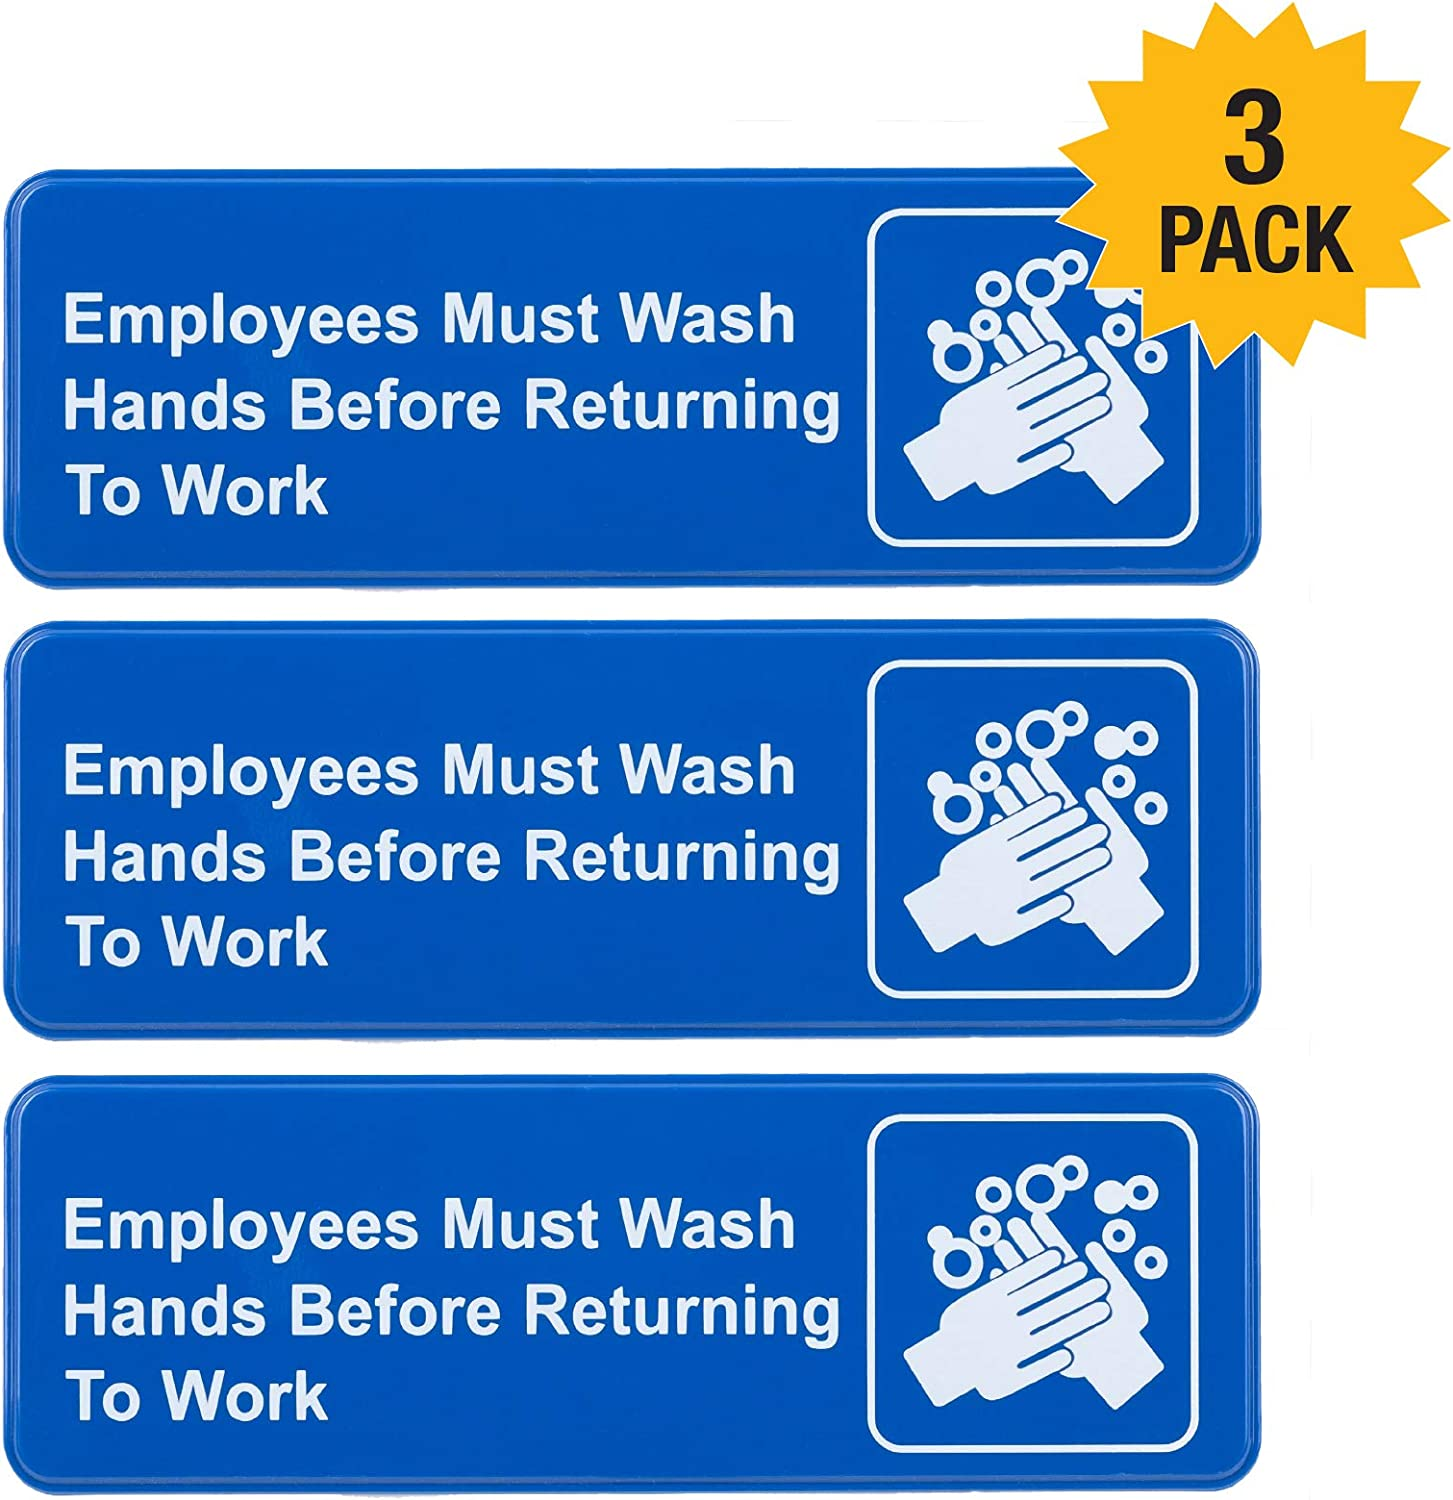 "Employees Must Wash Hands Before Returning to Work Sign: Easy to Mount Plastic Safety Informative Sign with Symbols Great for Business, 9""x3"", Pack of 3 (Blue))"